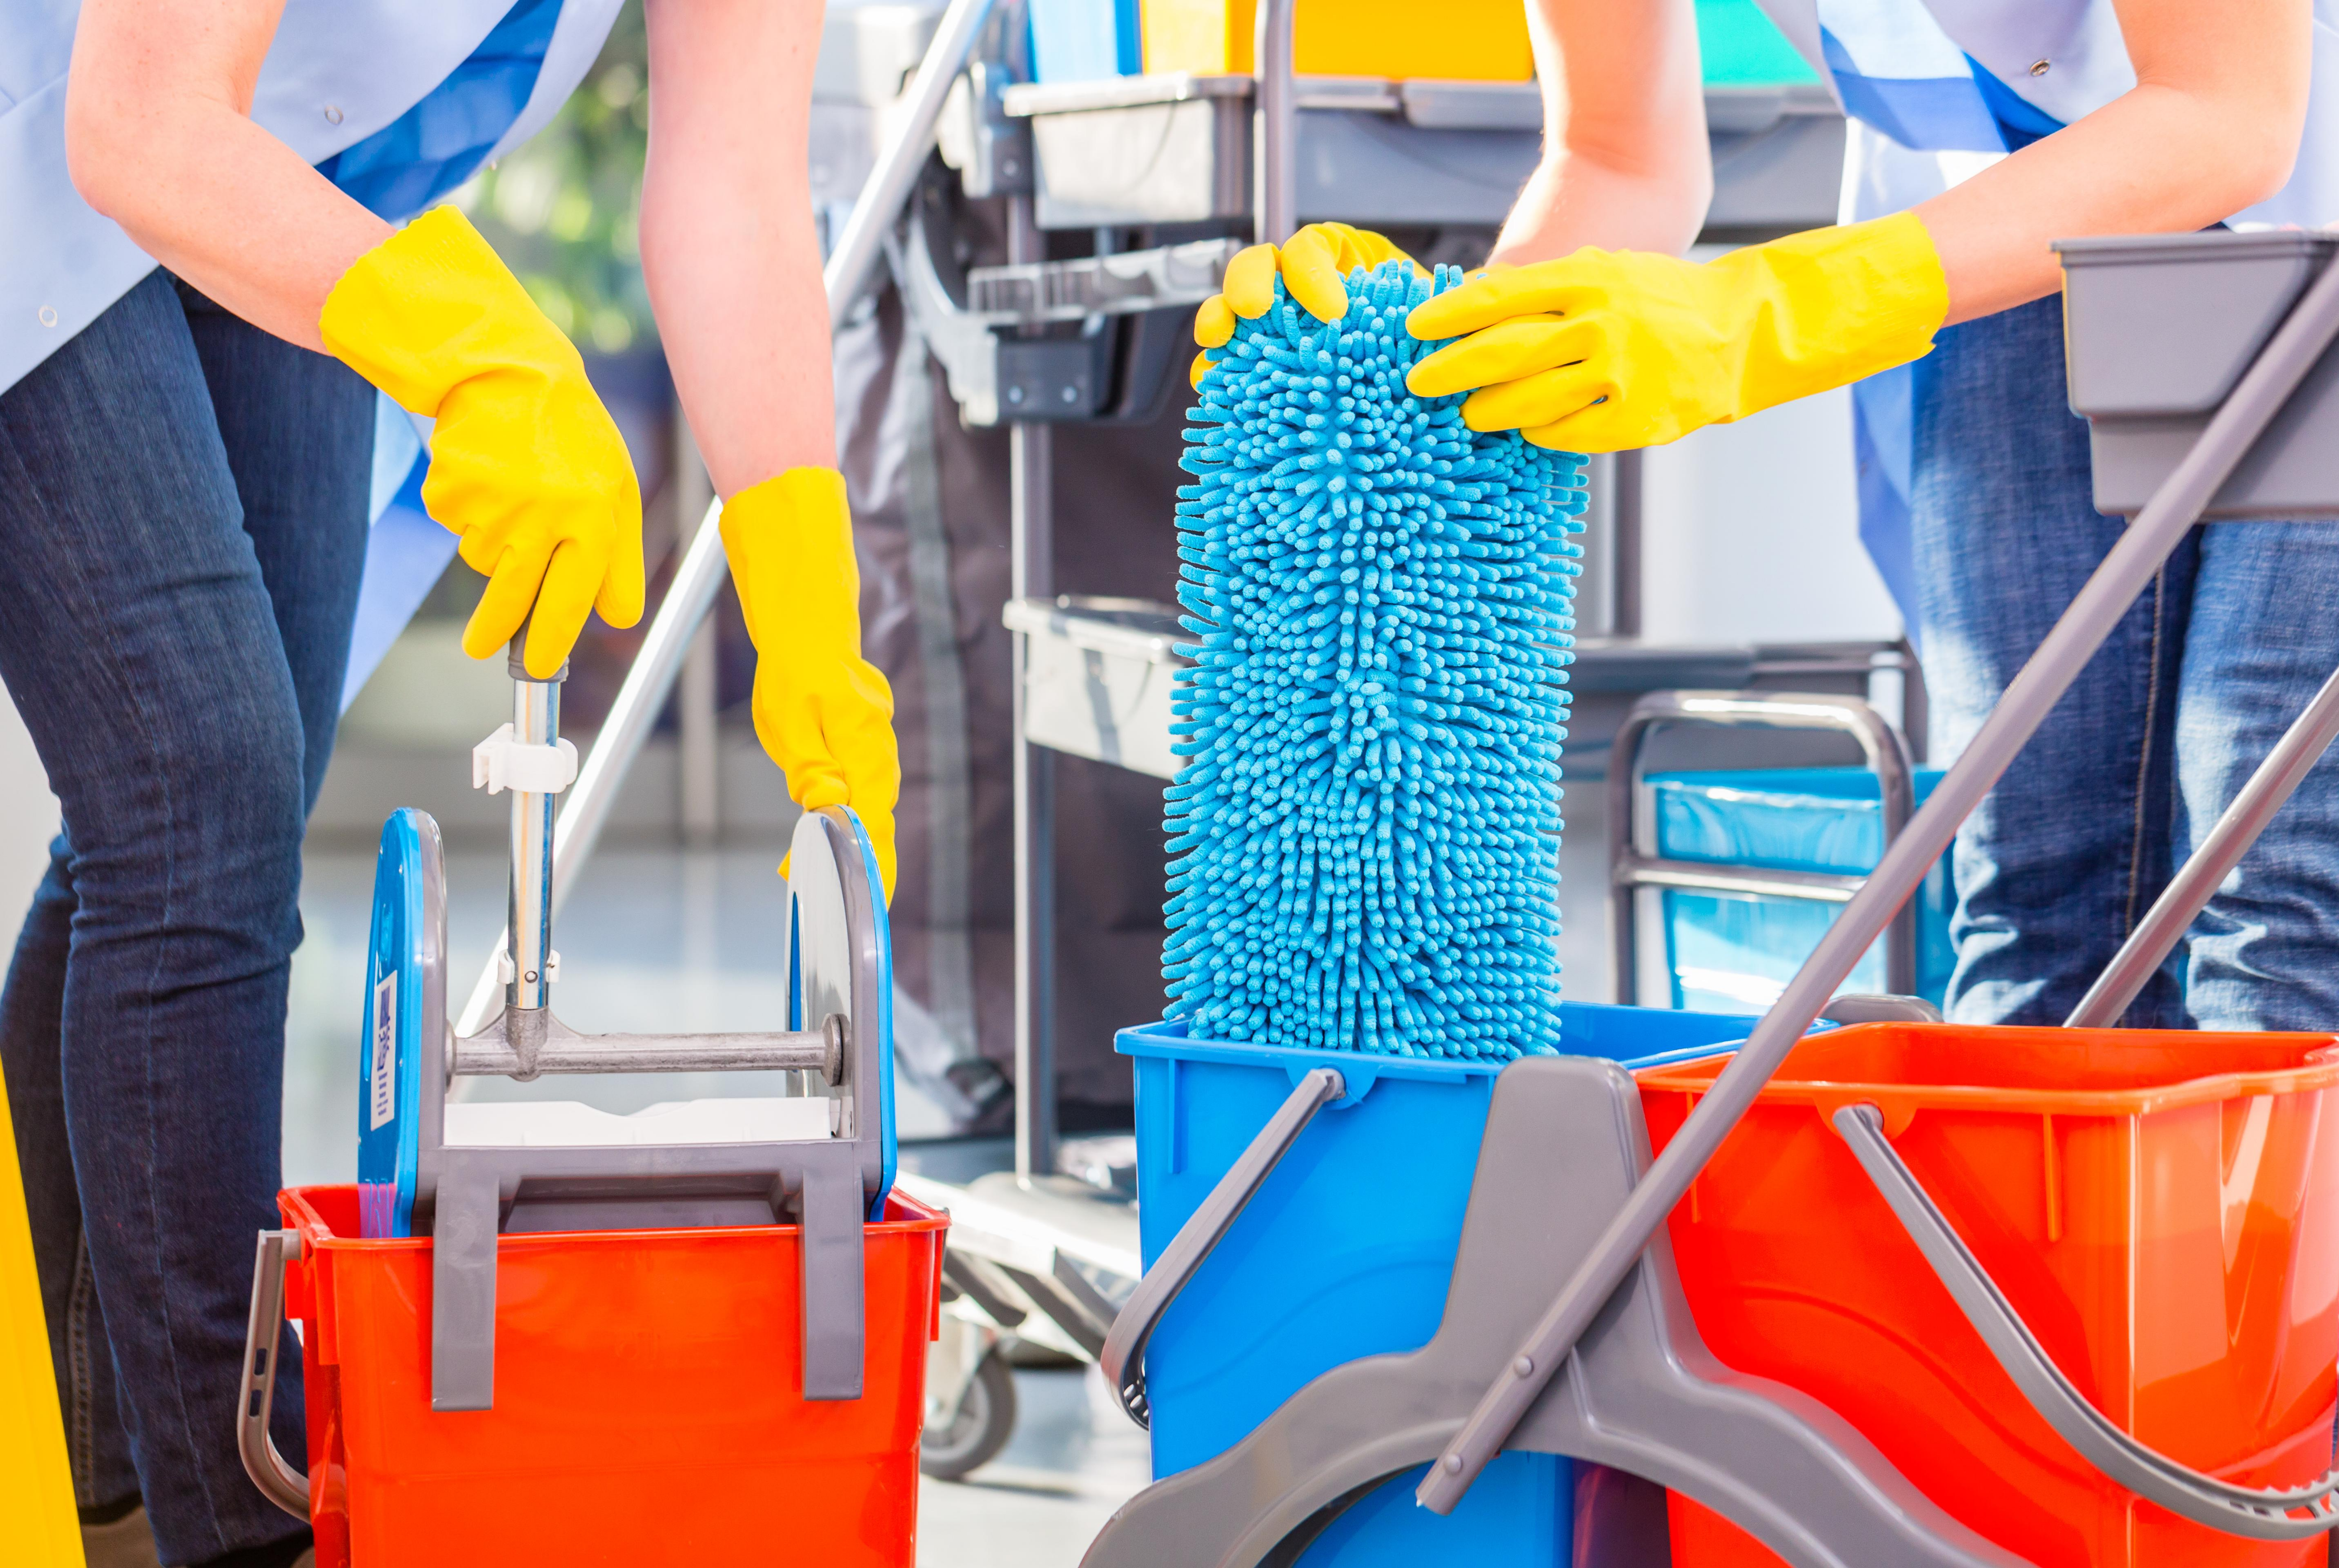 _Commercial Cleaning Services in Enfield